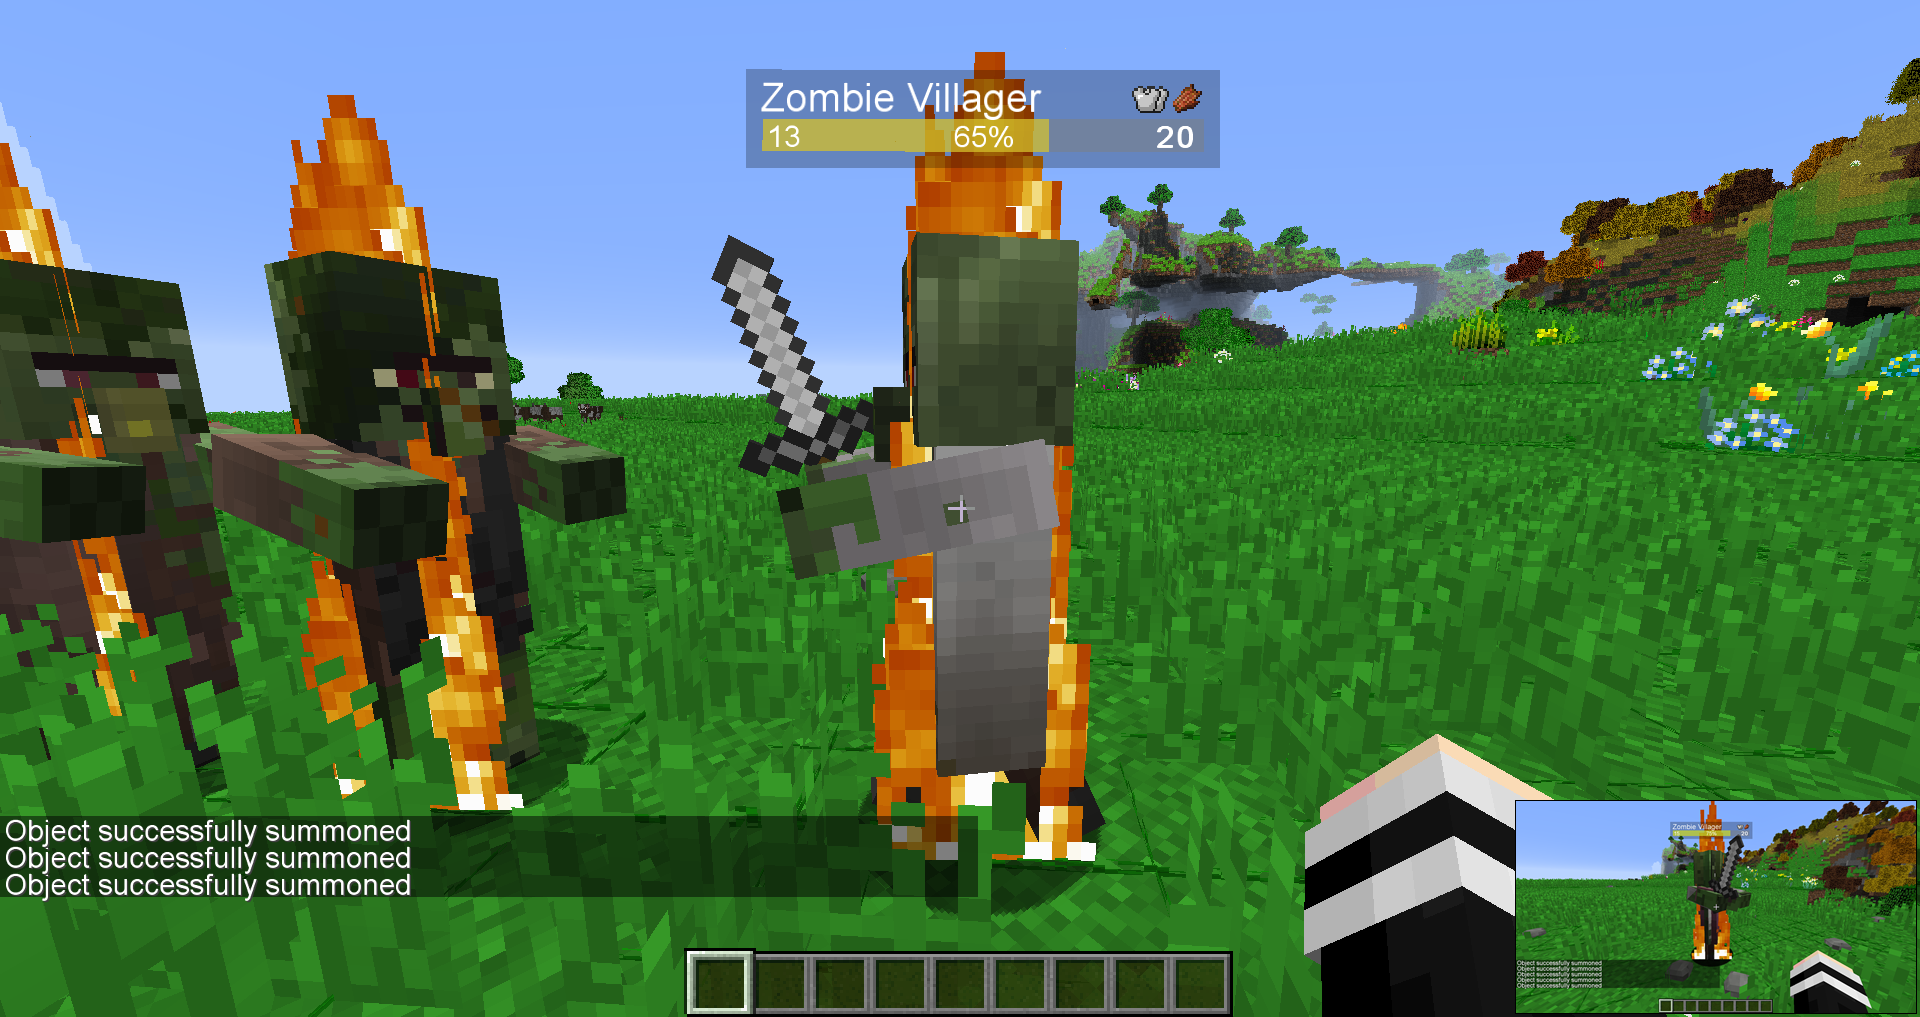 Zombie Villagers can spawn in with iron weapons in stage 0